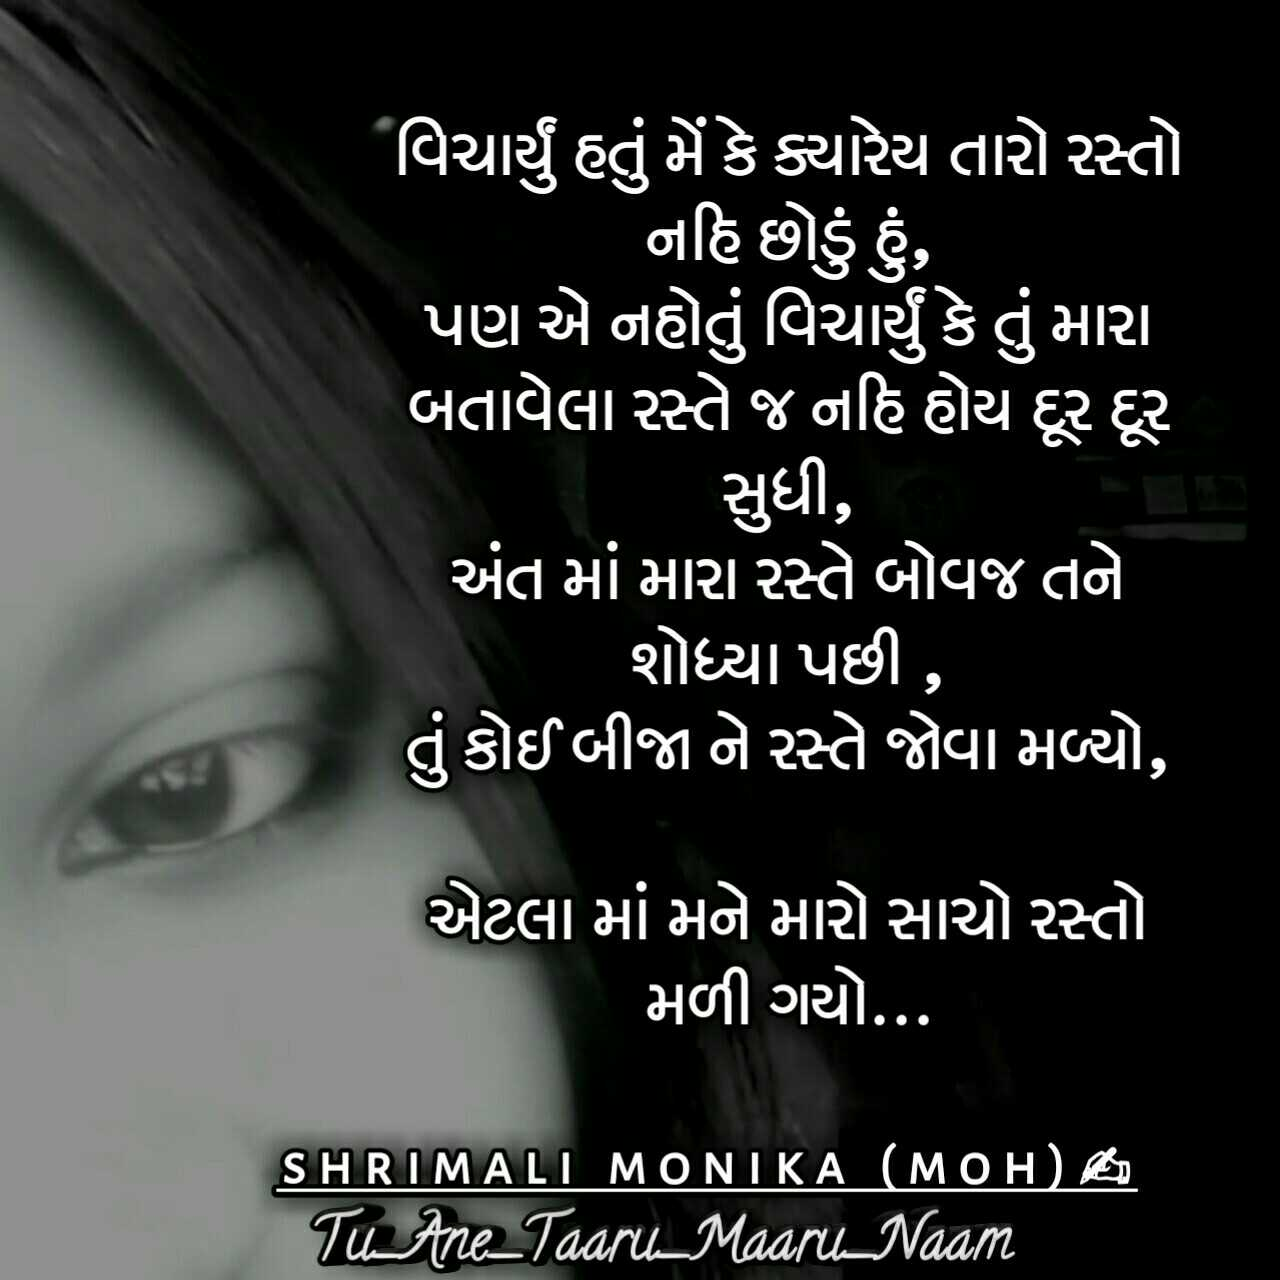 SHRIMALI MONIKA